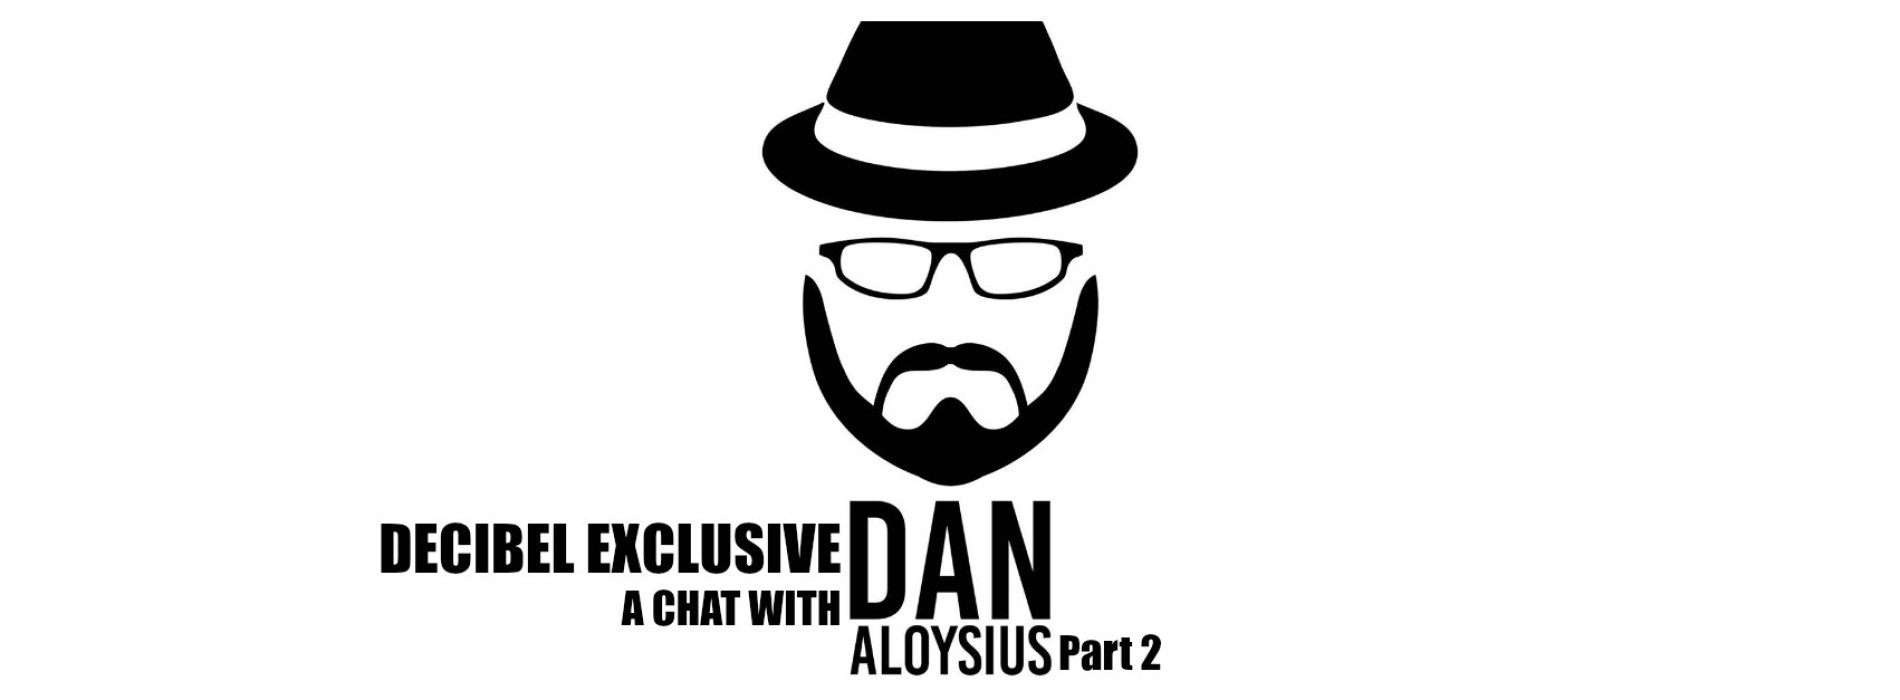 Decibel Exclusive : A Chat With Dan Aloysius (Part 2)